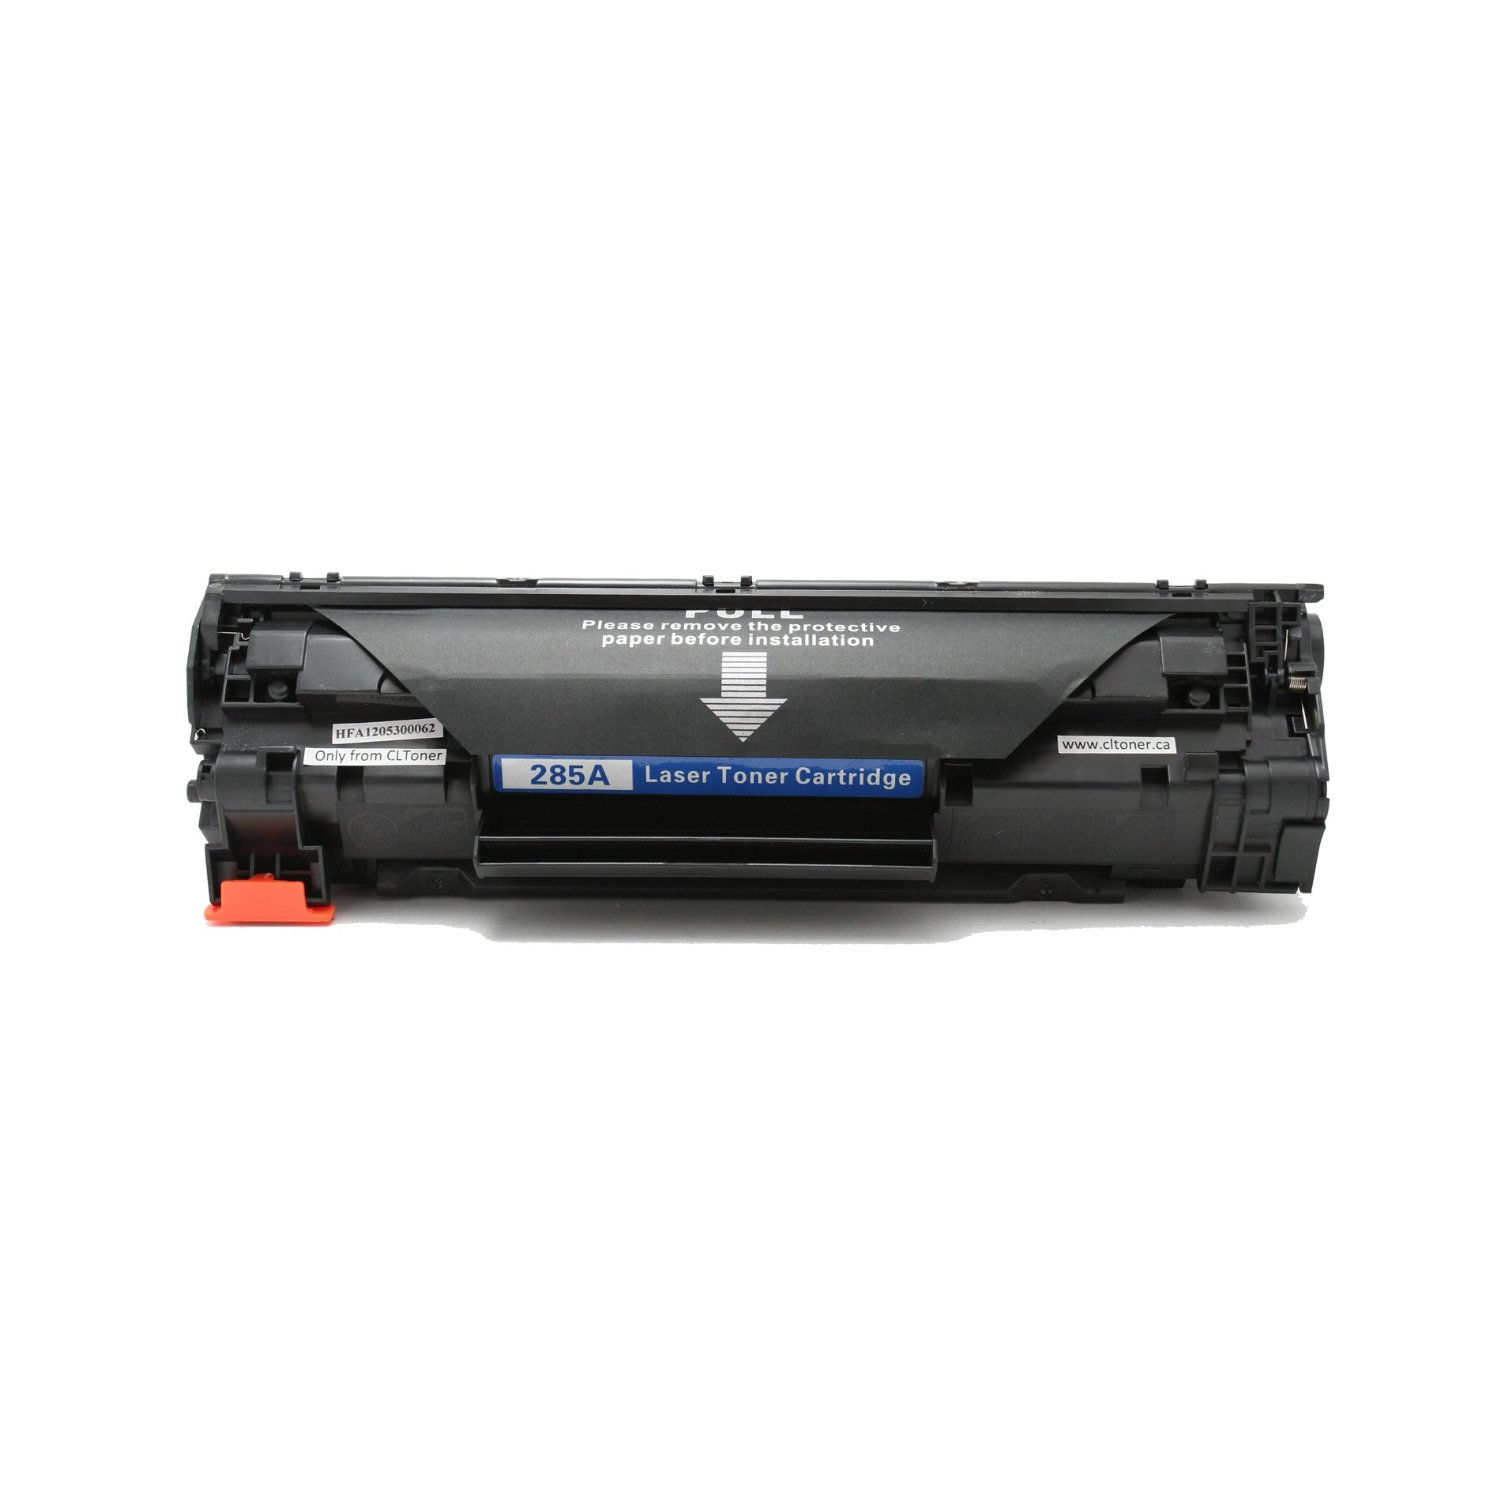 HP CE285A/ CRG-325/525/725/925: Toner Cartridge CE285A (85A) Compatible Remanufactured for HP CE285A Black